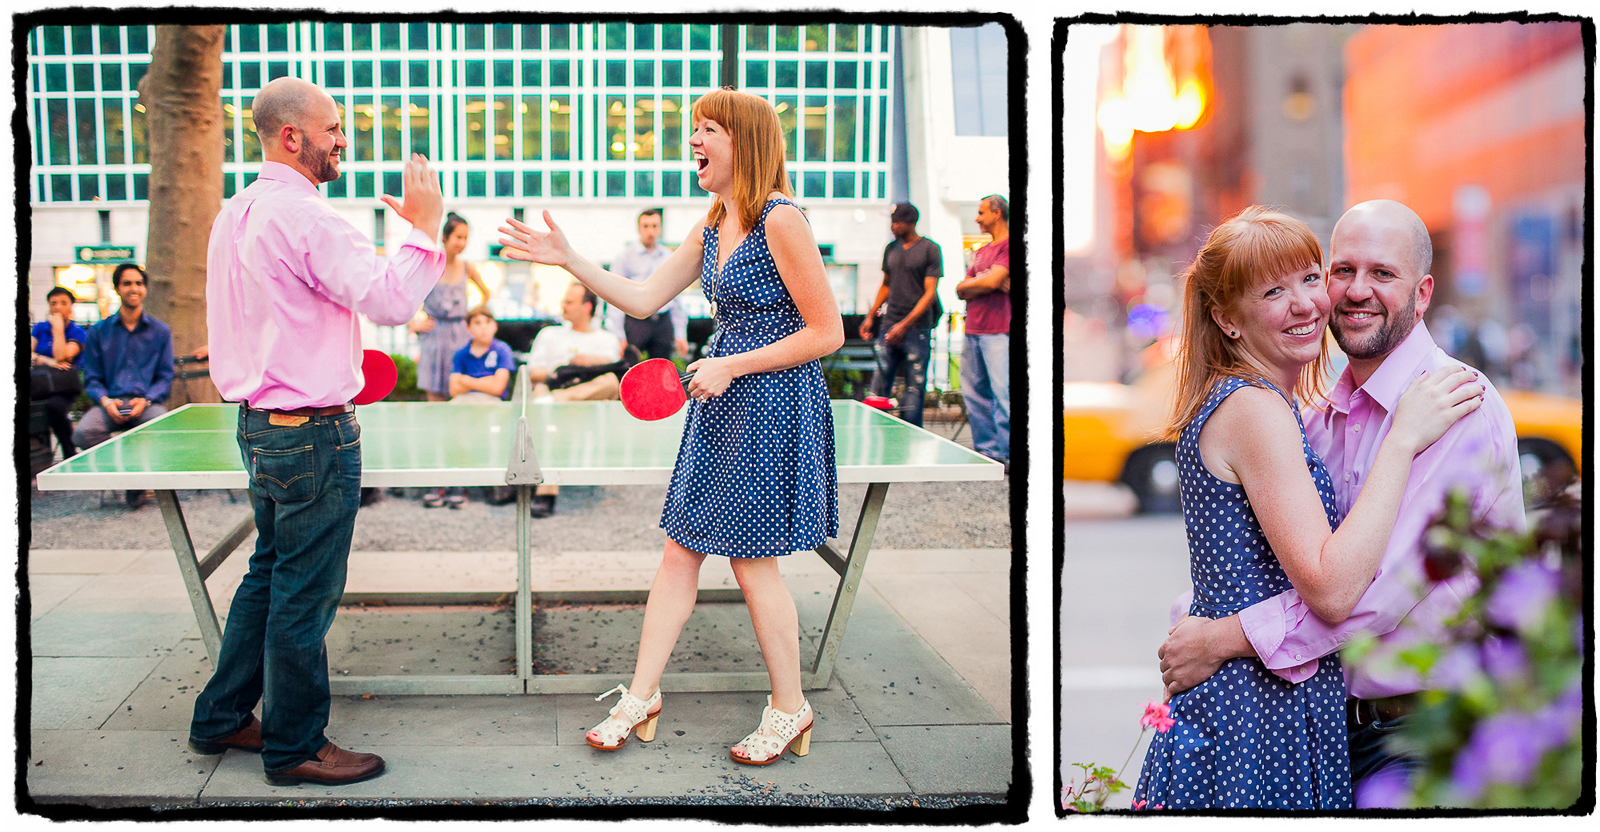 Engagement Portraits: Jenni & Brandon play table tennis in Bryant Park.